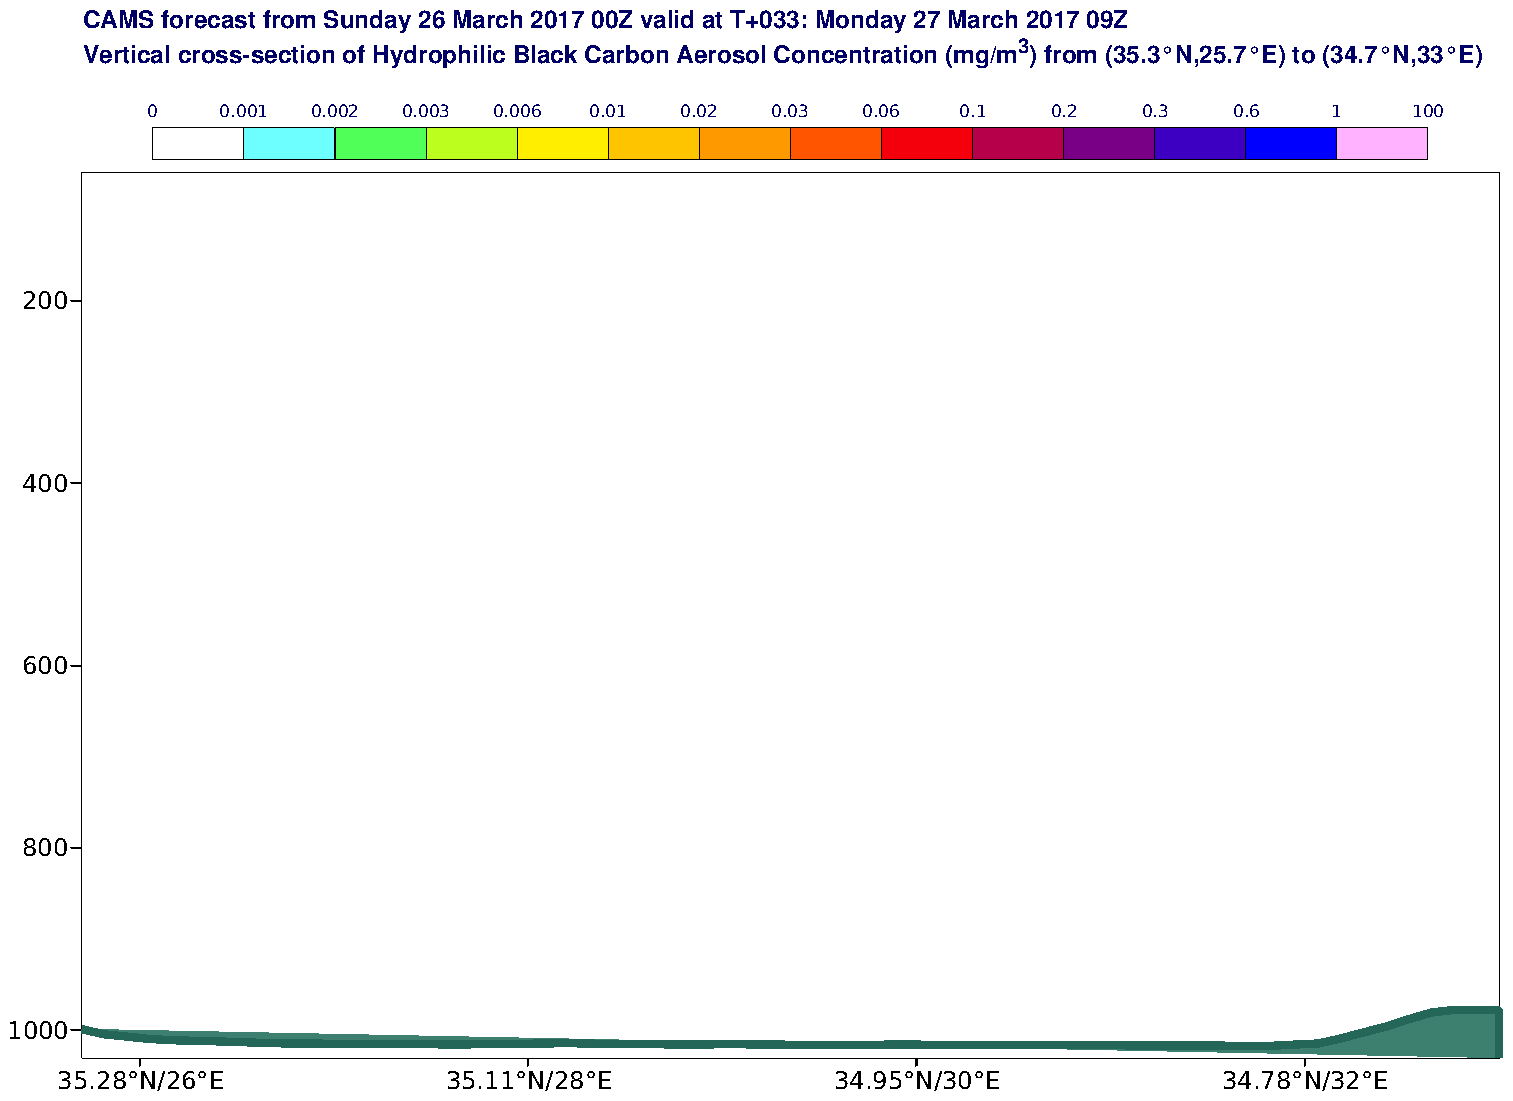 Vertical cross-section of Hydrophilic Black Carbon Aerosol Concentration (mg/m3) valid at T33 - 2017-03-27 09:00